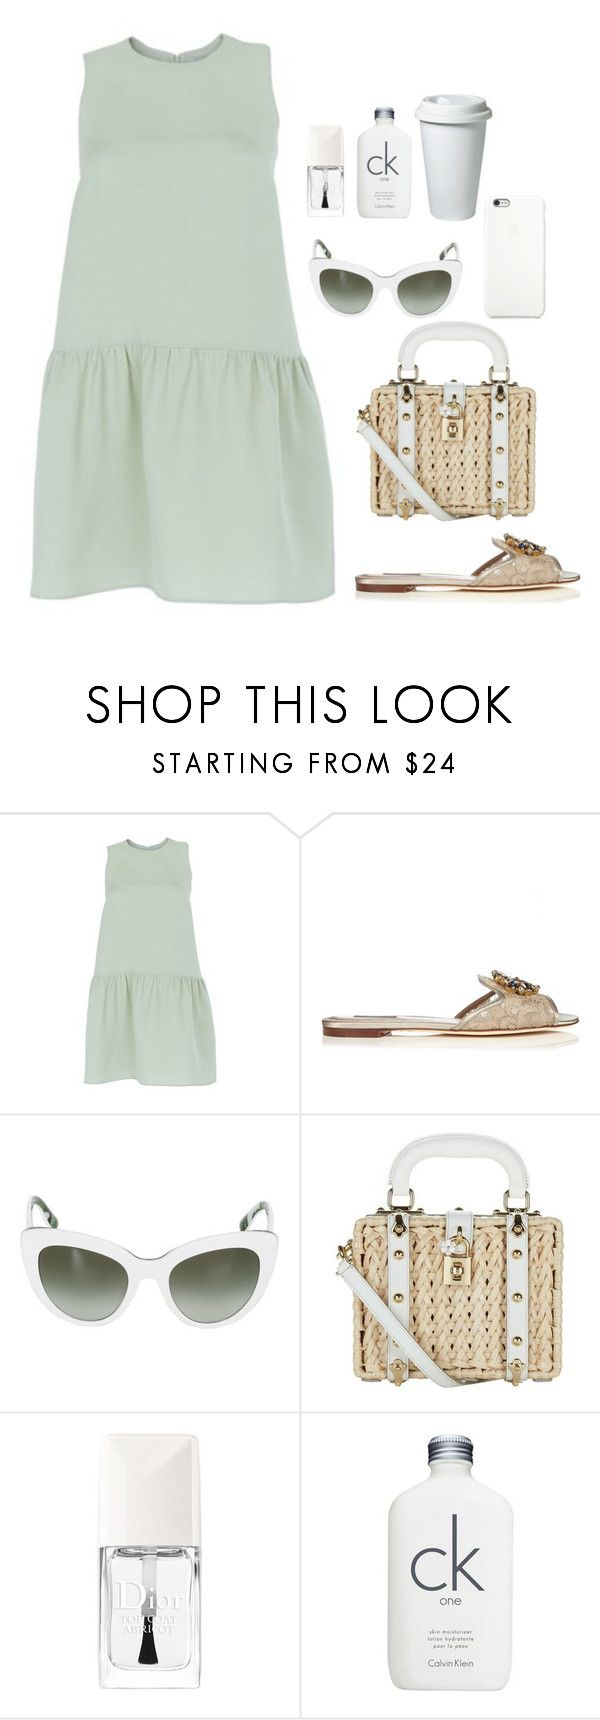 """."" by owl00 ❤ liked on Polyvore featuring Valentino, Dolce&Gabbana, Black Apple, Christian Dior and Calvin Klein"